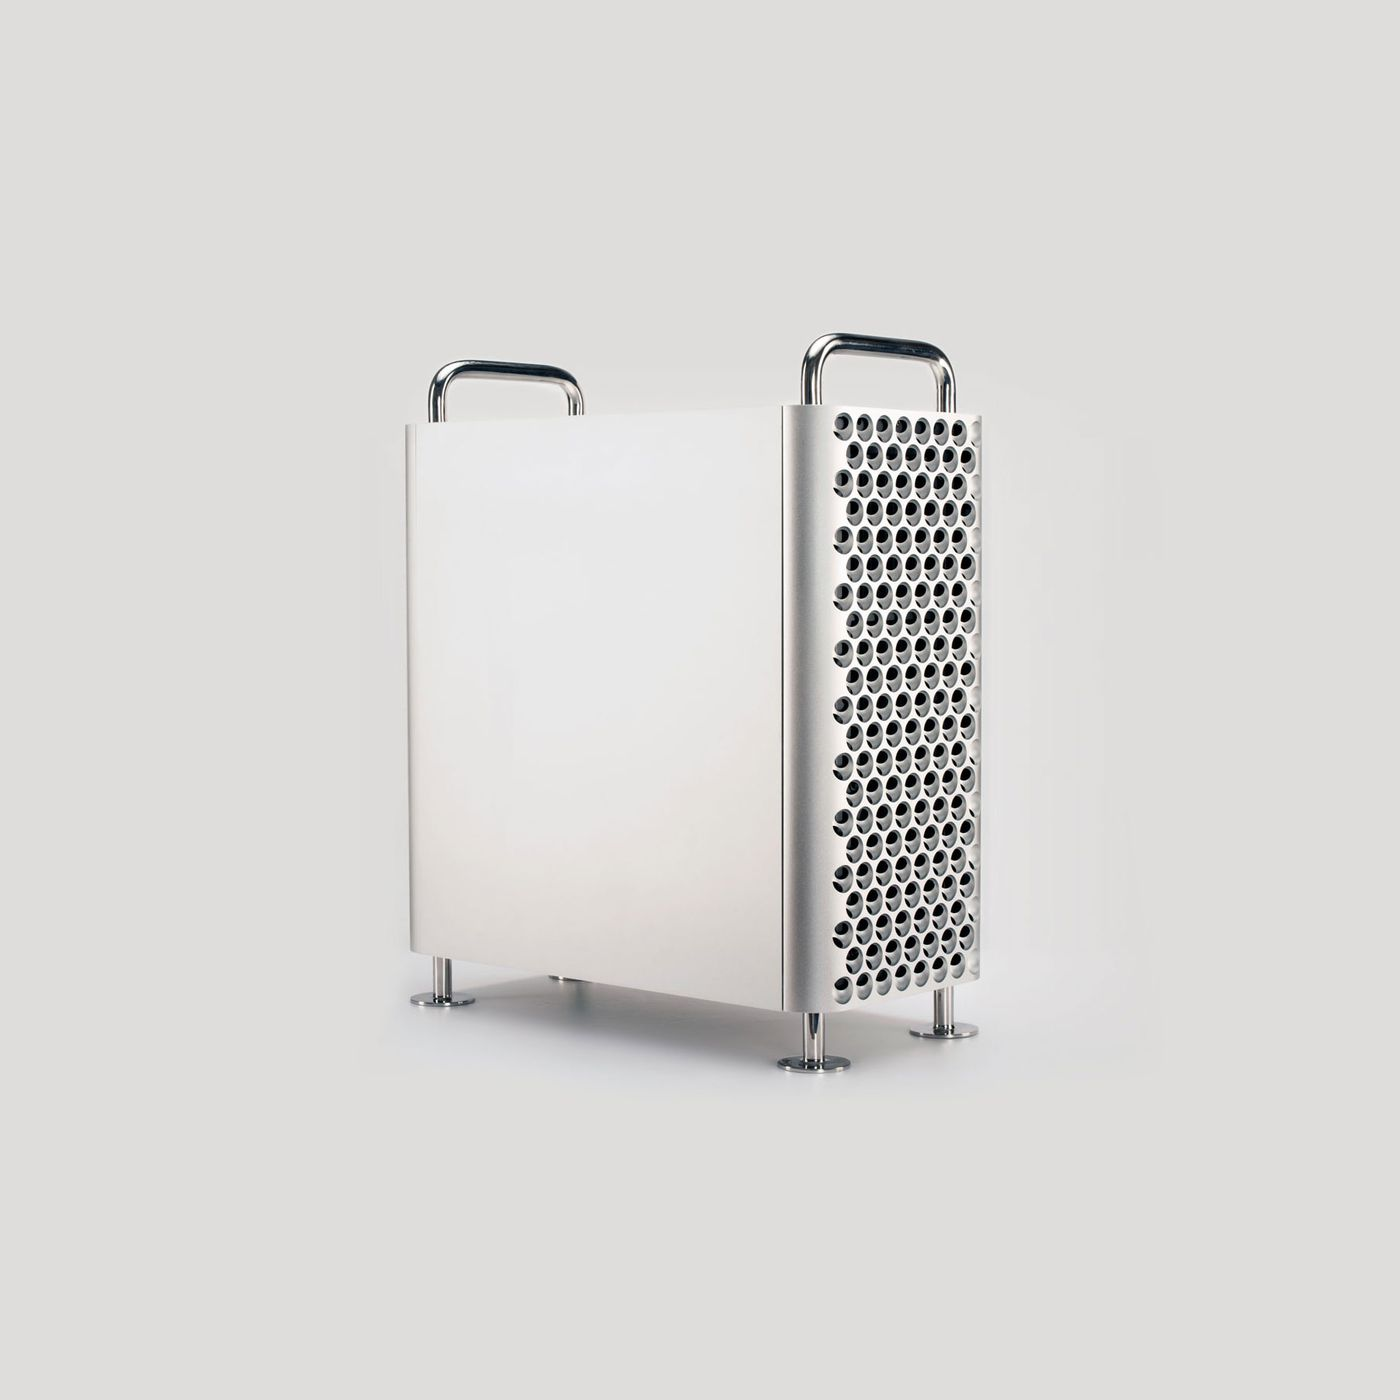 Give your desk some Mac Pro cheese grater chic with this lookalike PC case  - The Verge